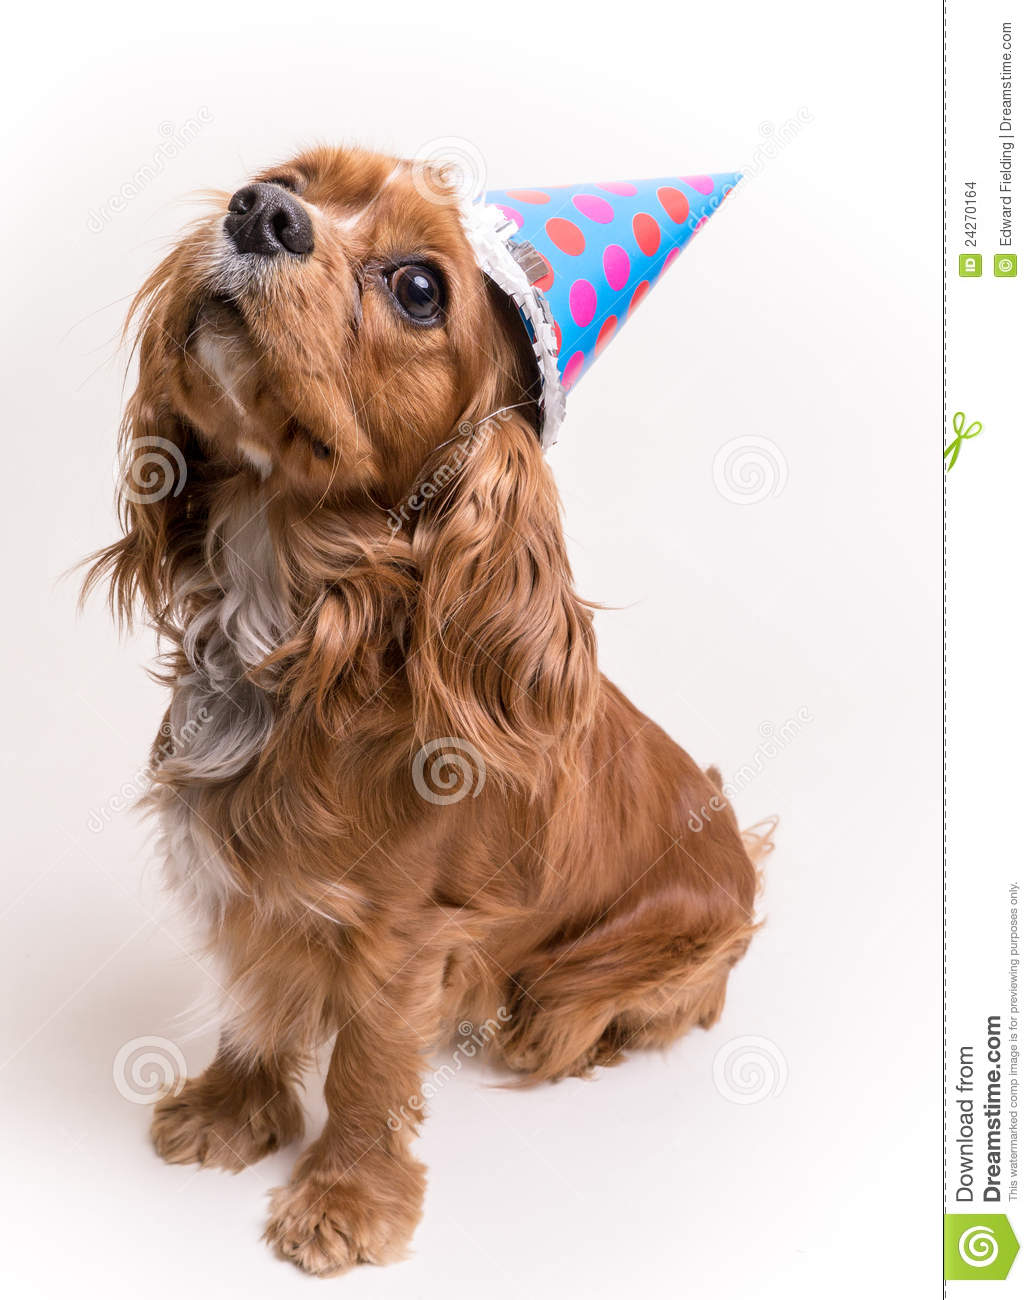 A Cavalier King Charles Spaniel Puppy With Birthday Party Hat Celebrates His First